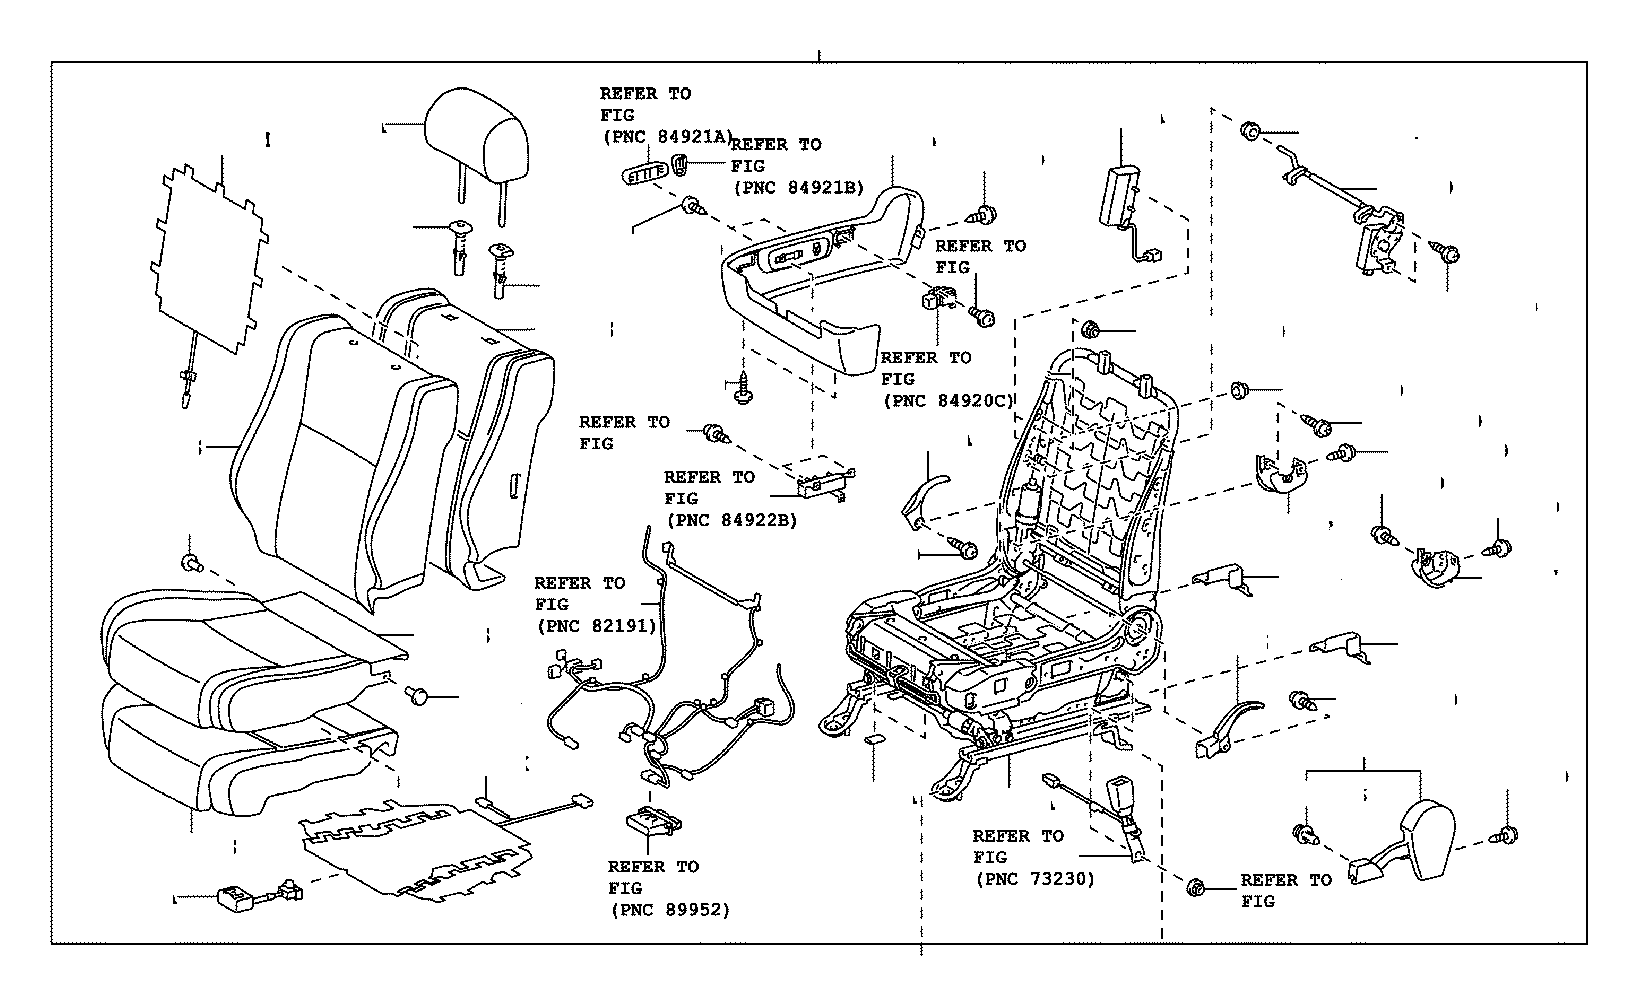 Toyota Camry Headrest Guide Front